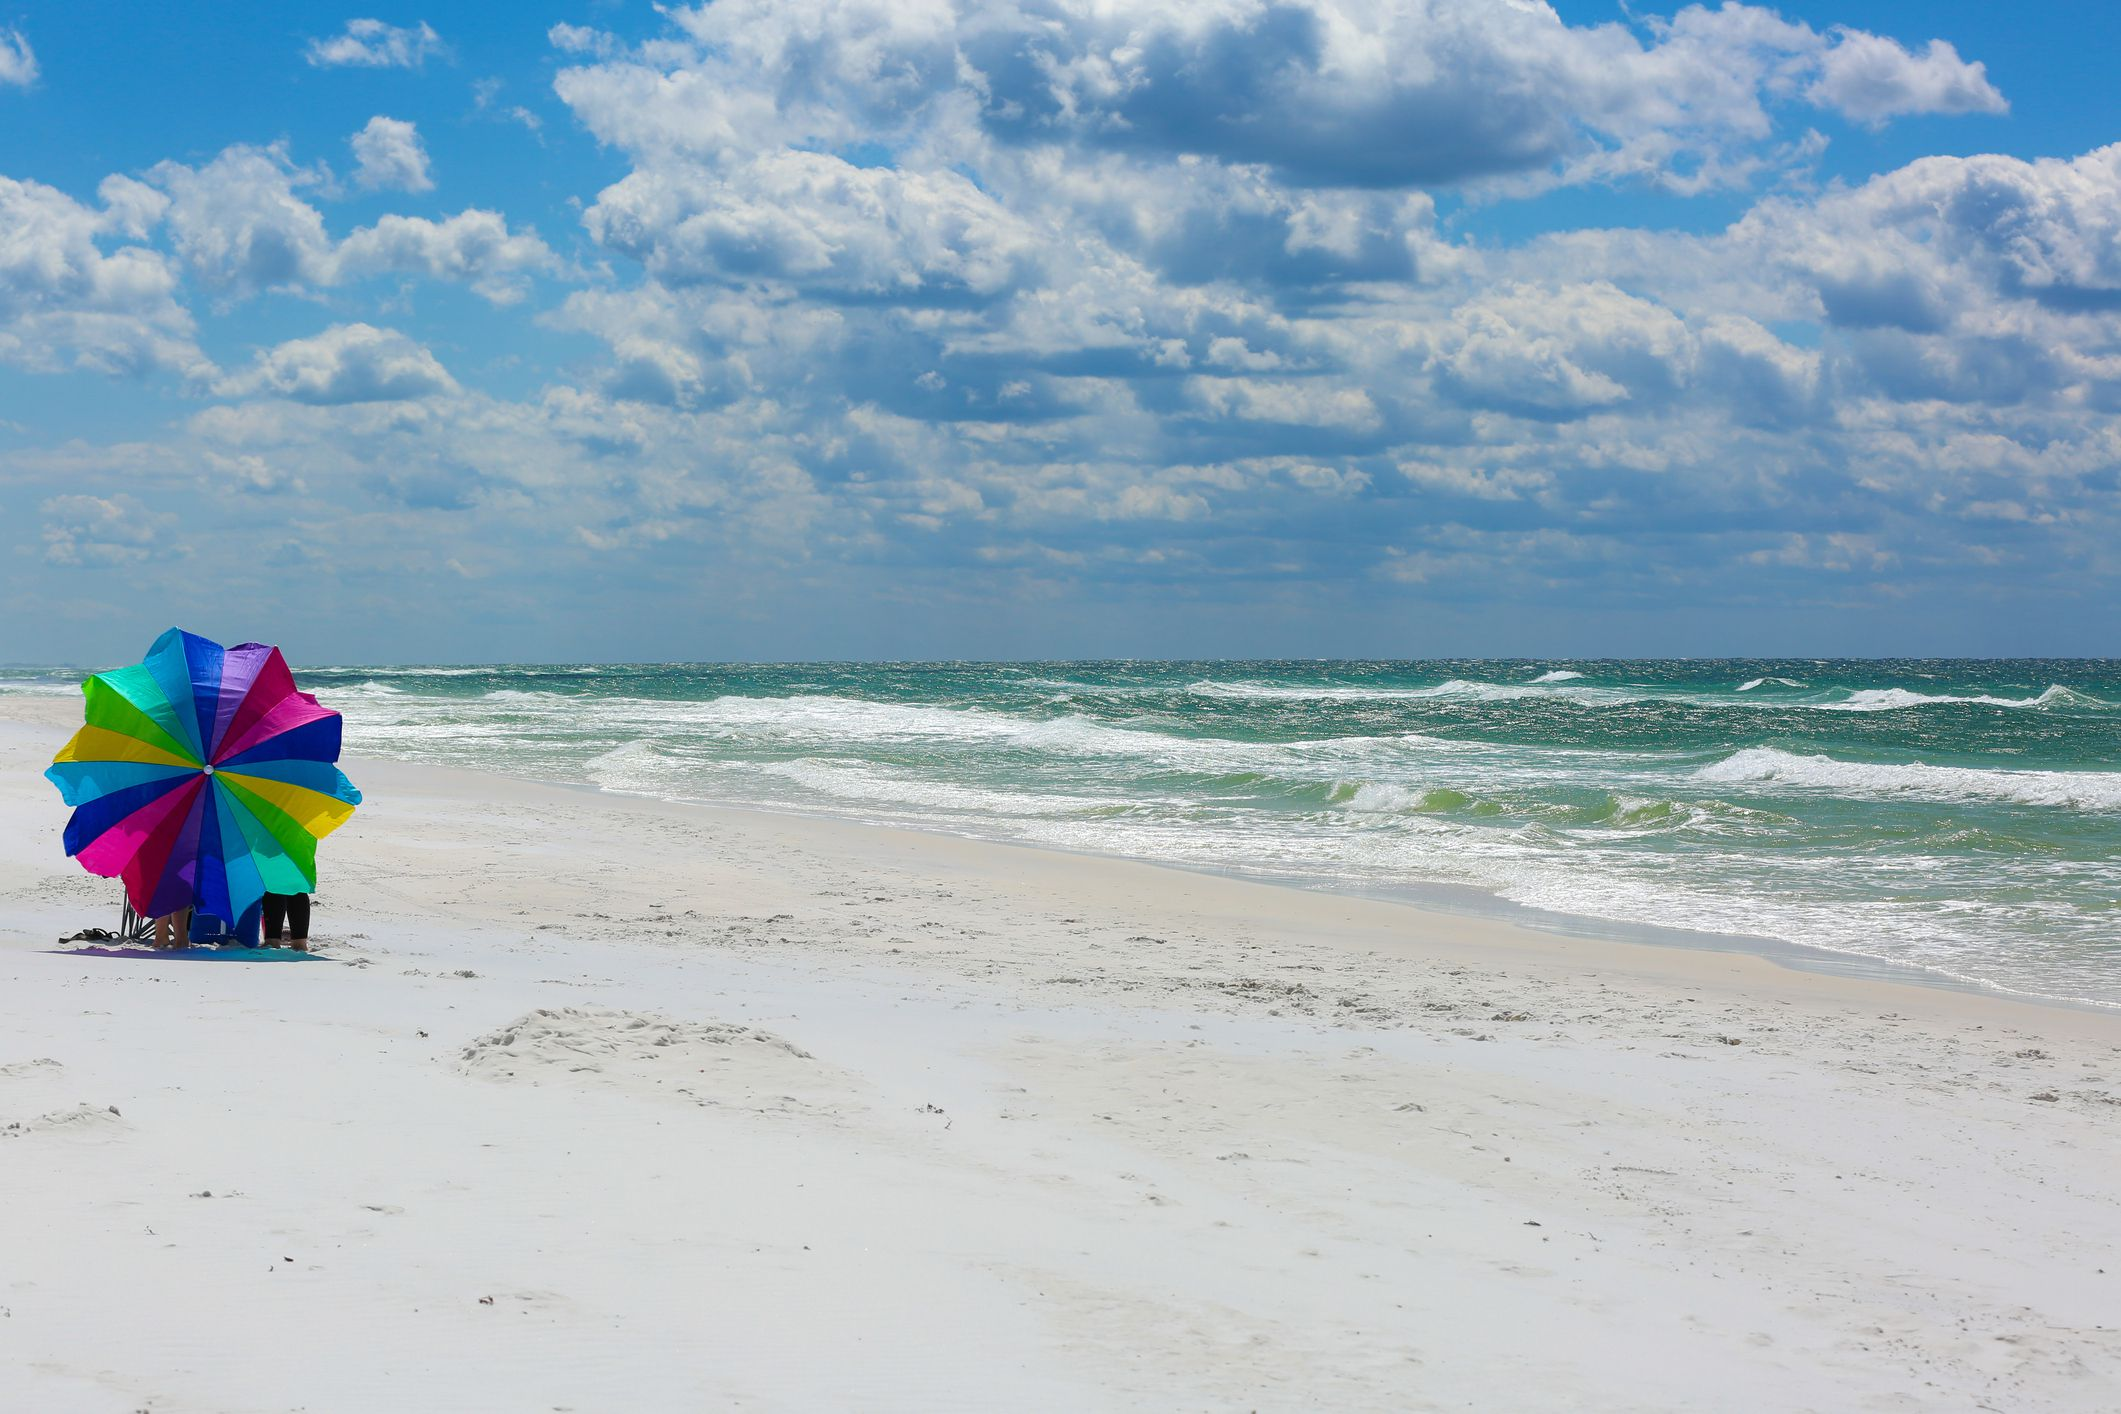 The 10 Best RV Parks in Florida